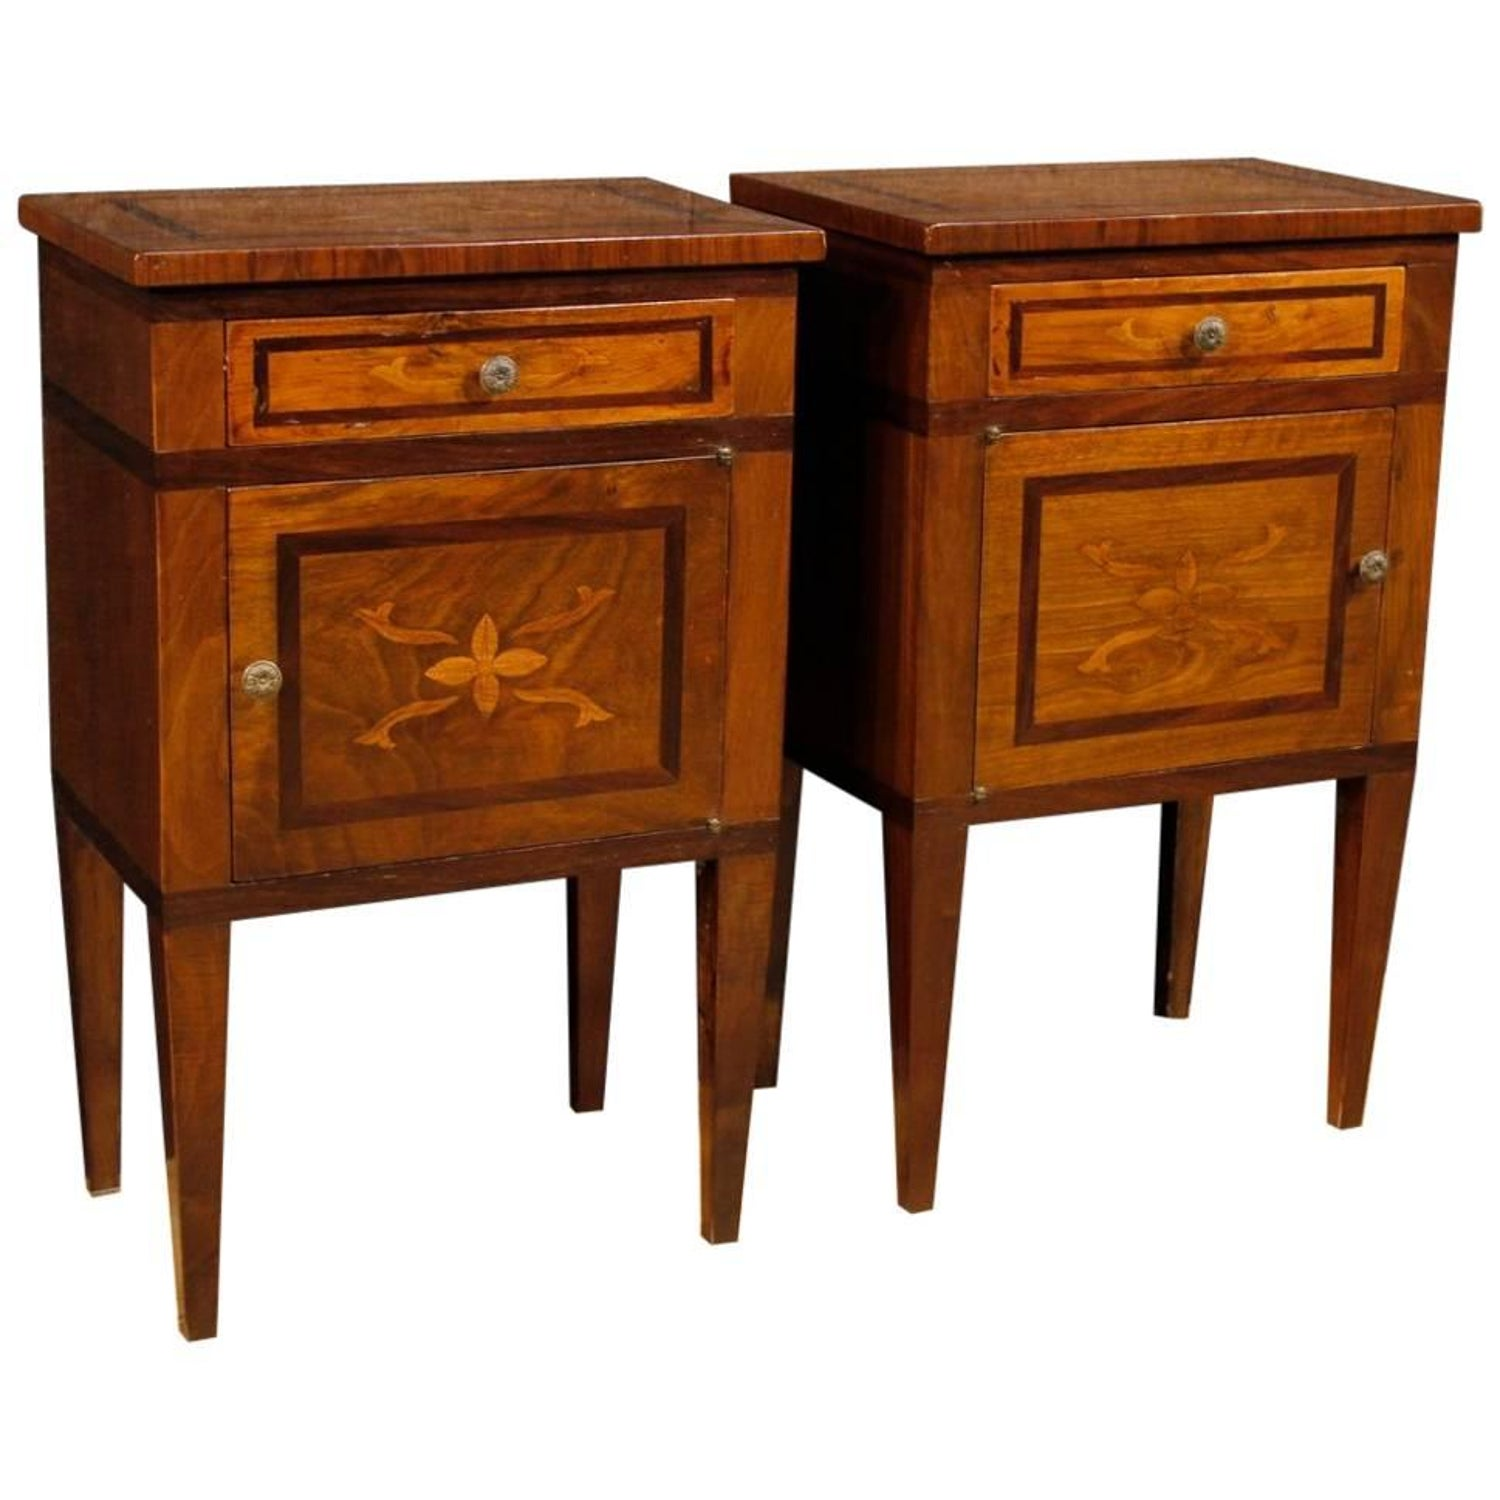 20th Century Pair Of Italian Inlaid Wooden Bedside Tables In Louis Xvi Style At 1stdibs